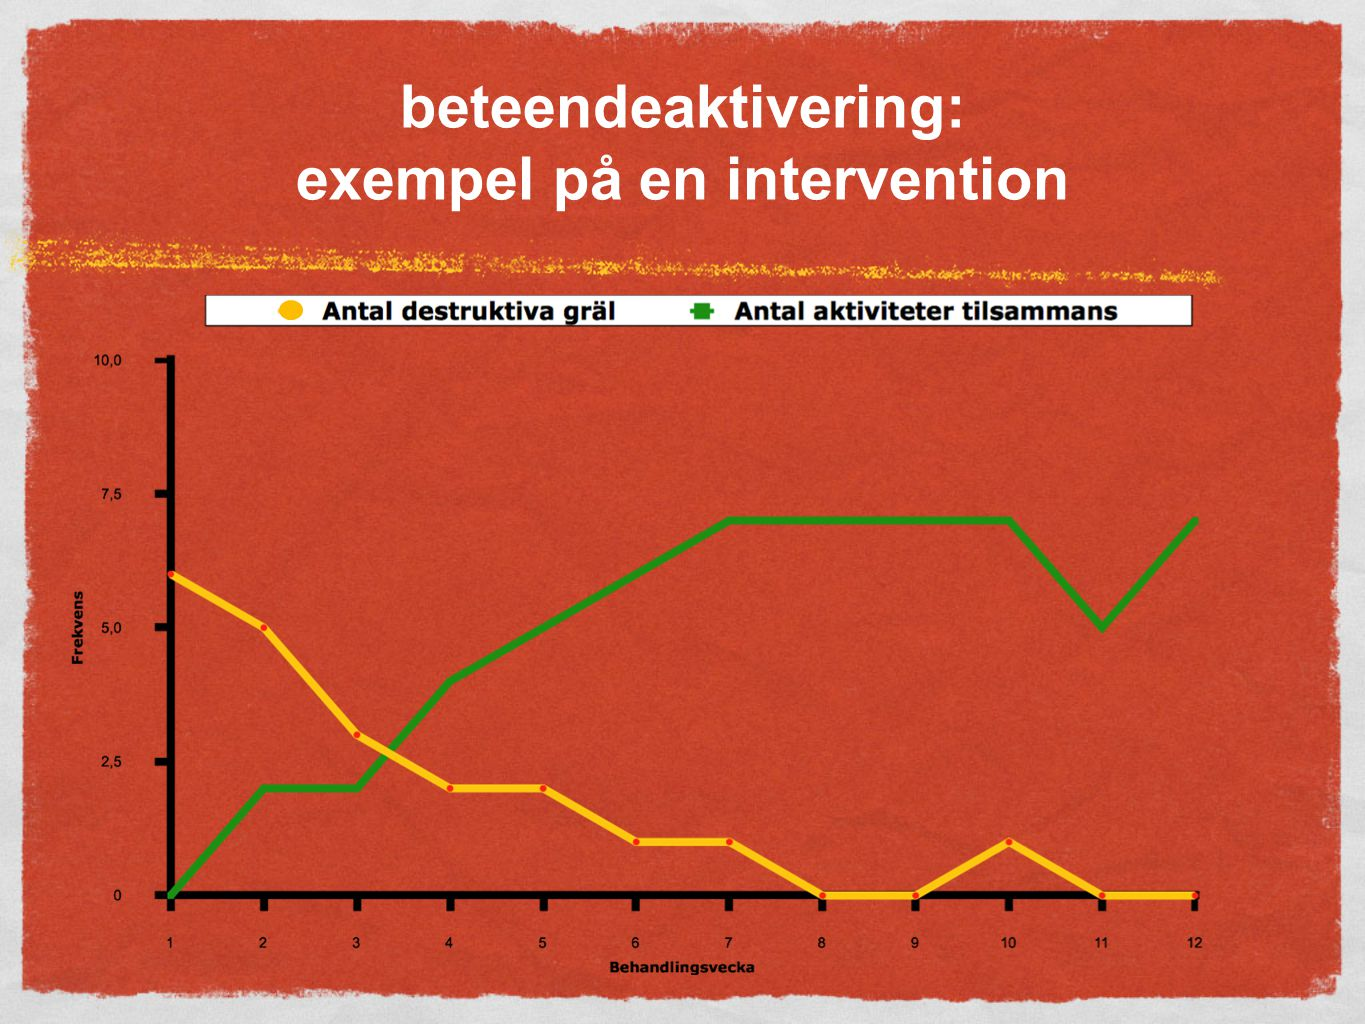 beteendeaktivering: exempel på en intervention